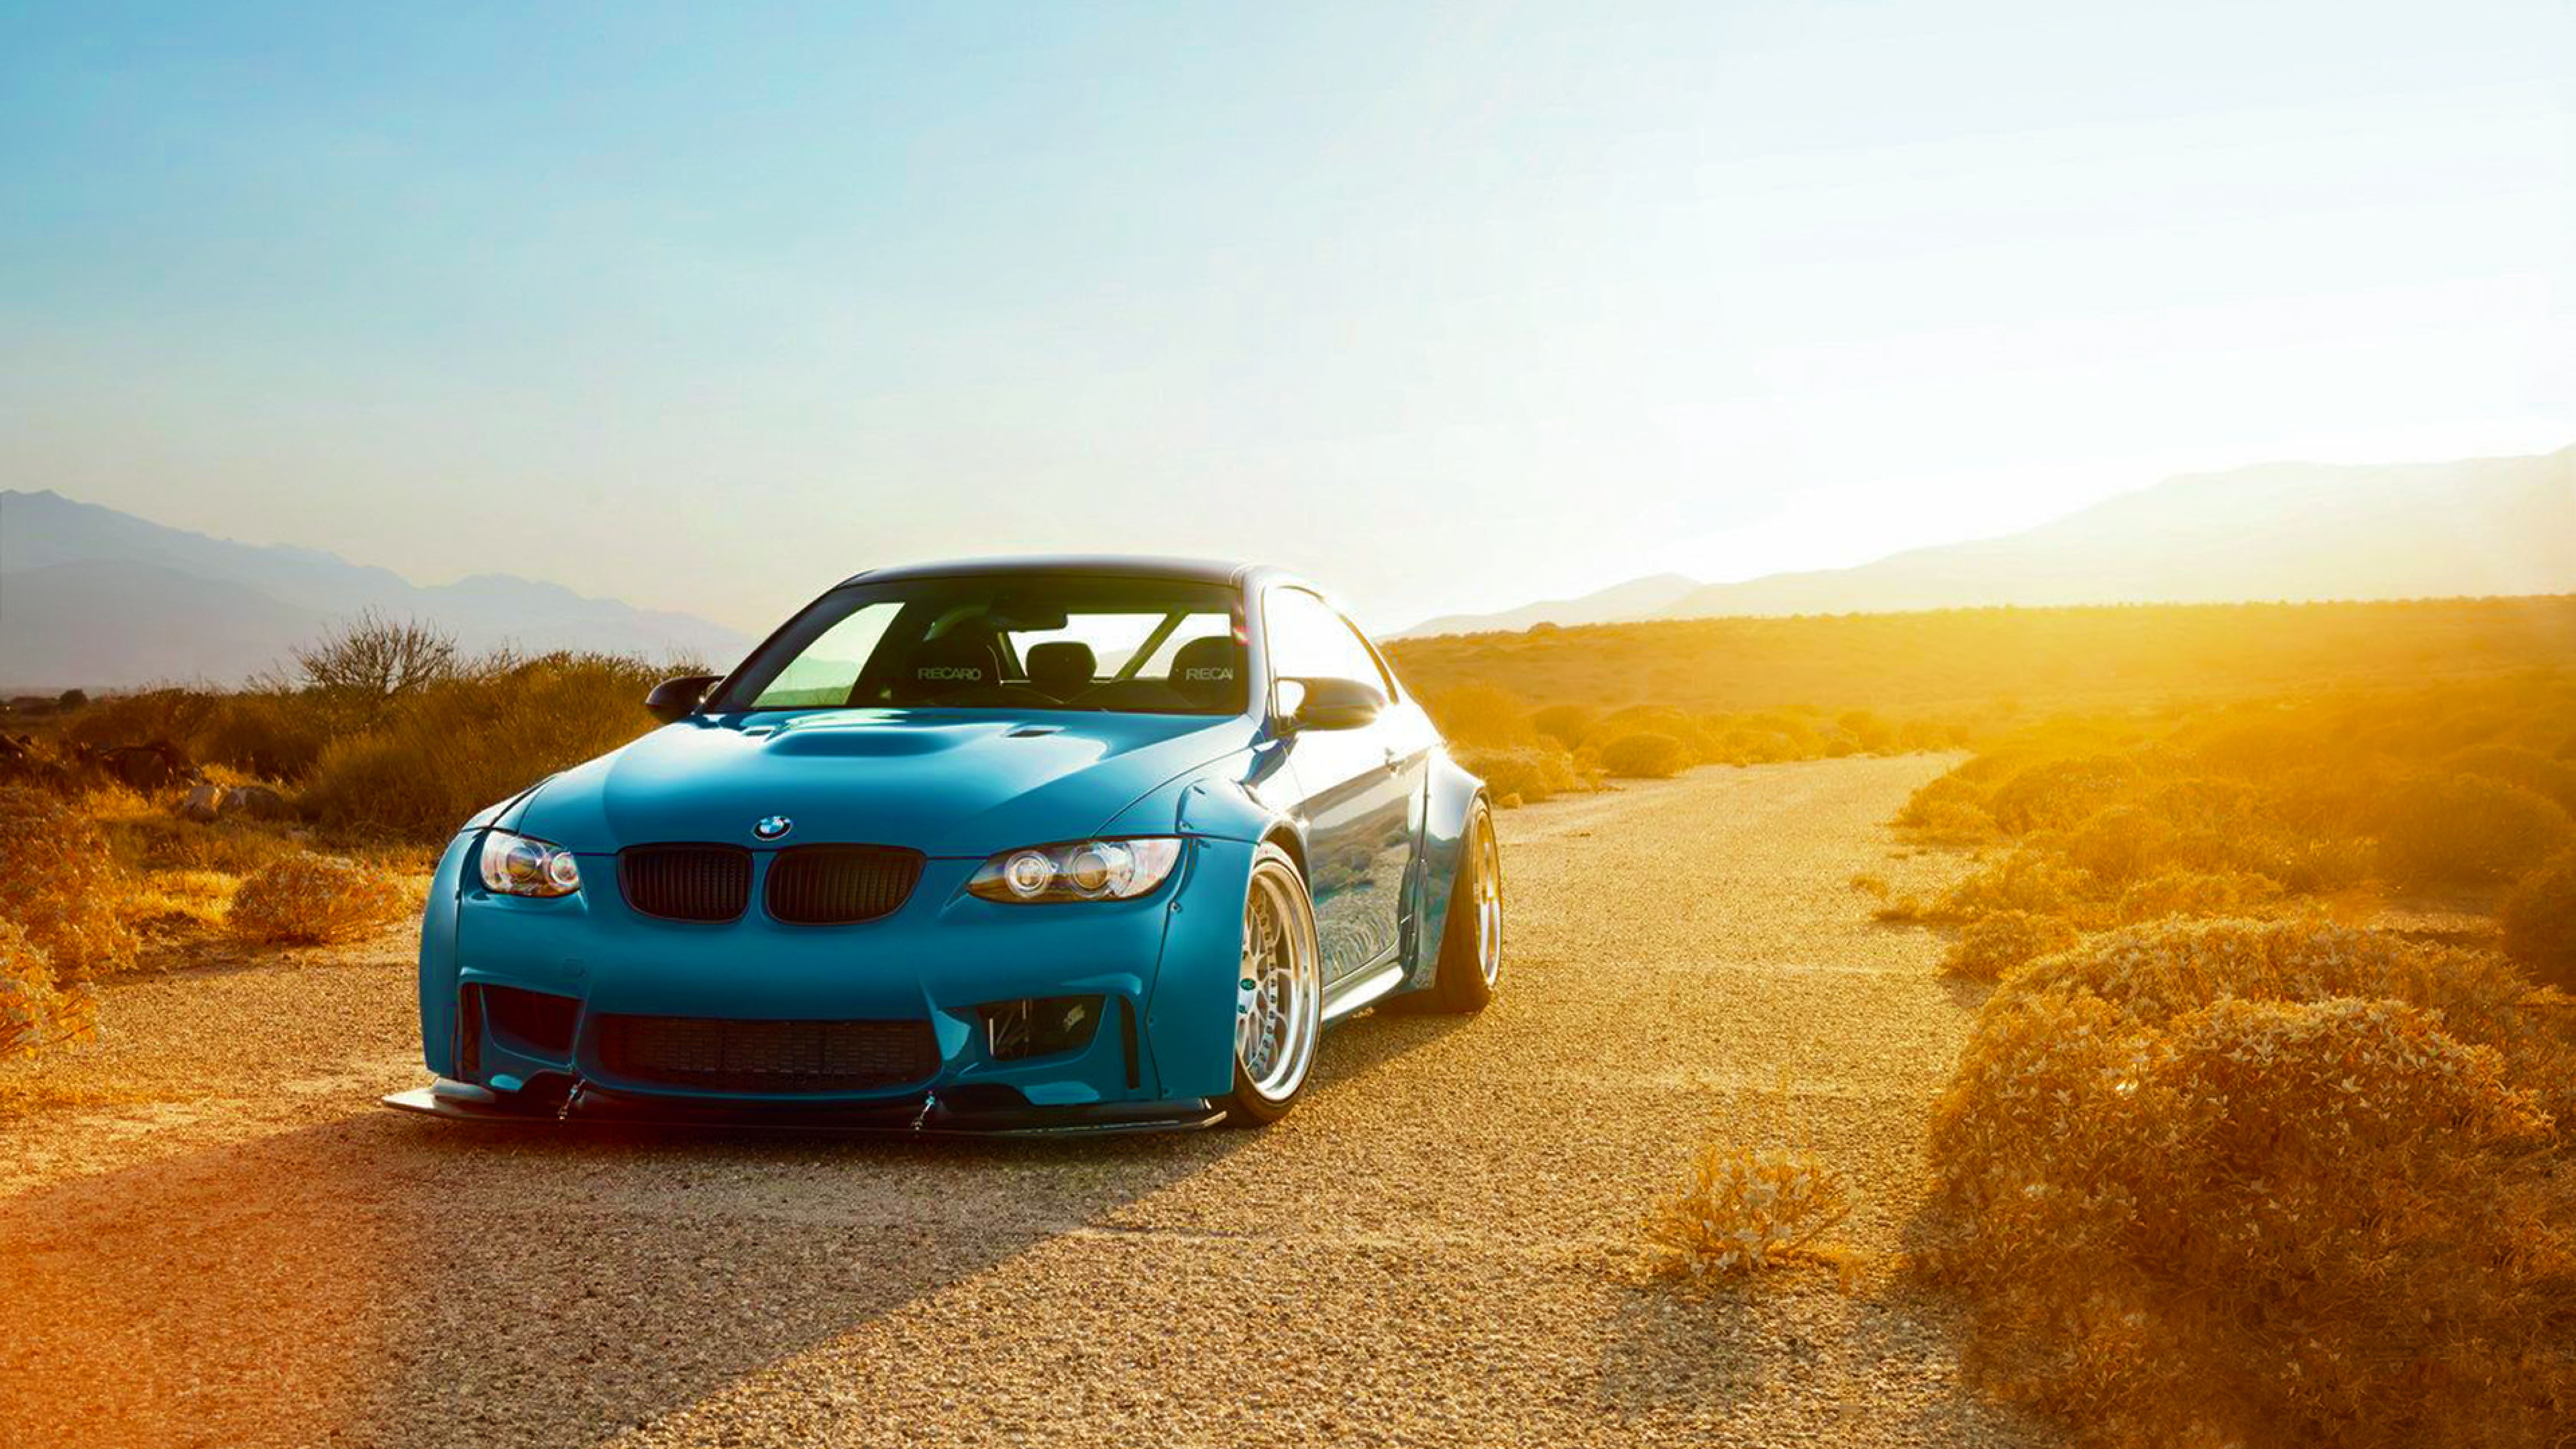 Bmw M3 E92 Blue, HD Cars, 4k Wallpapers, Images ...